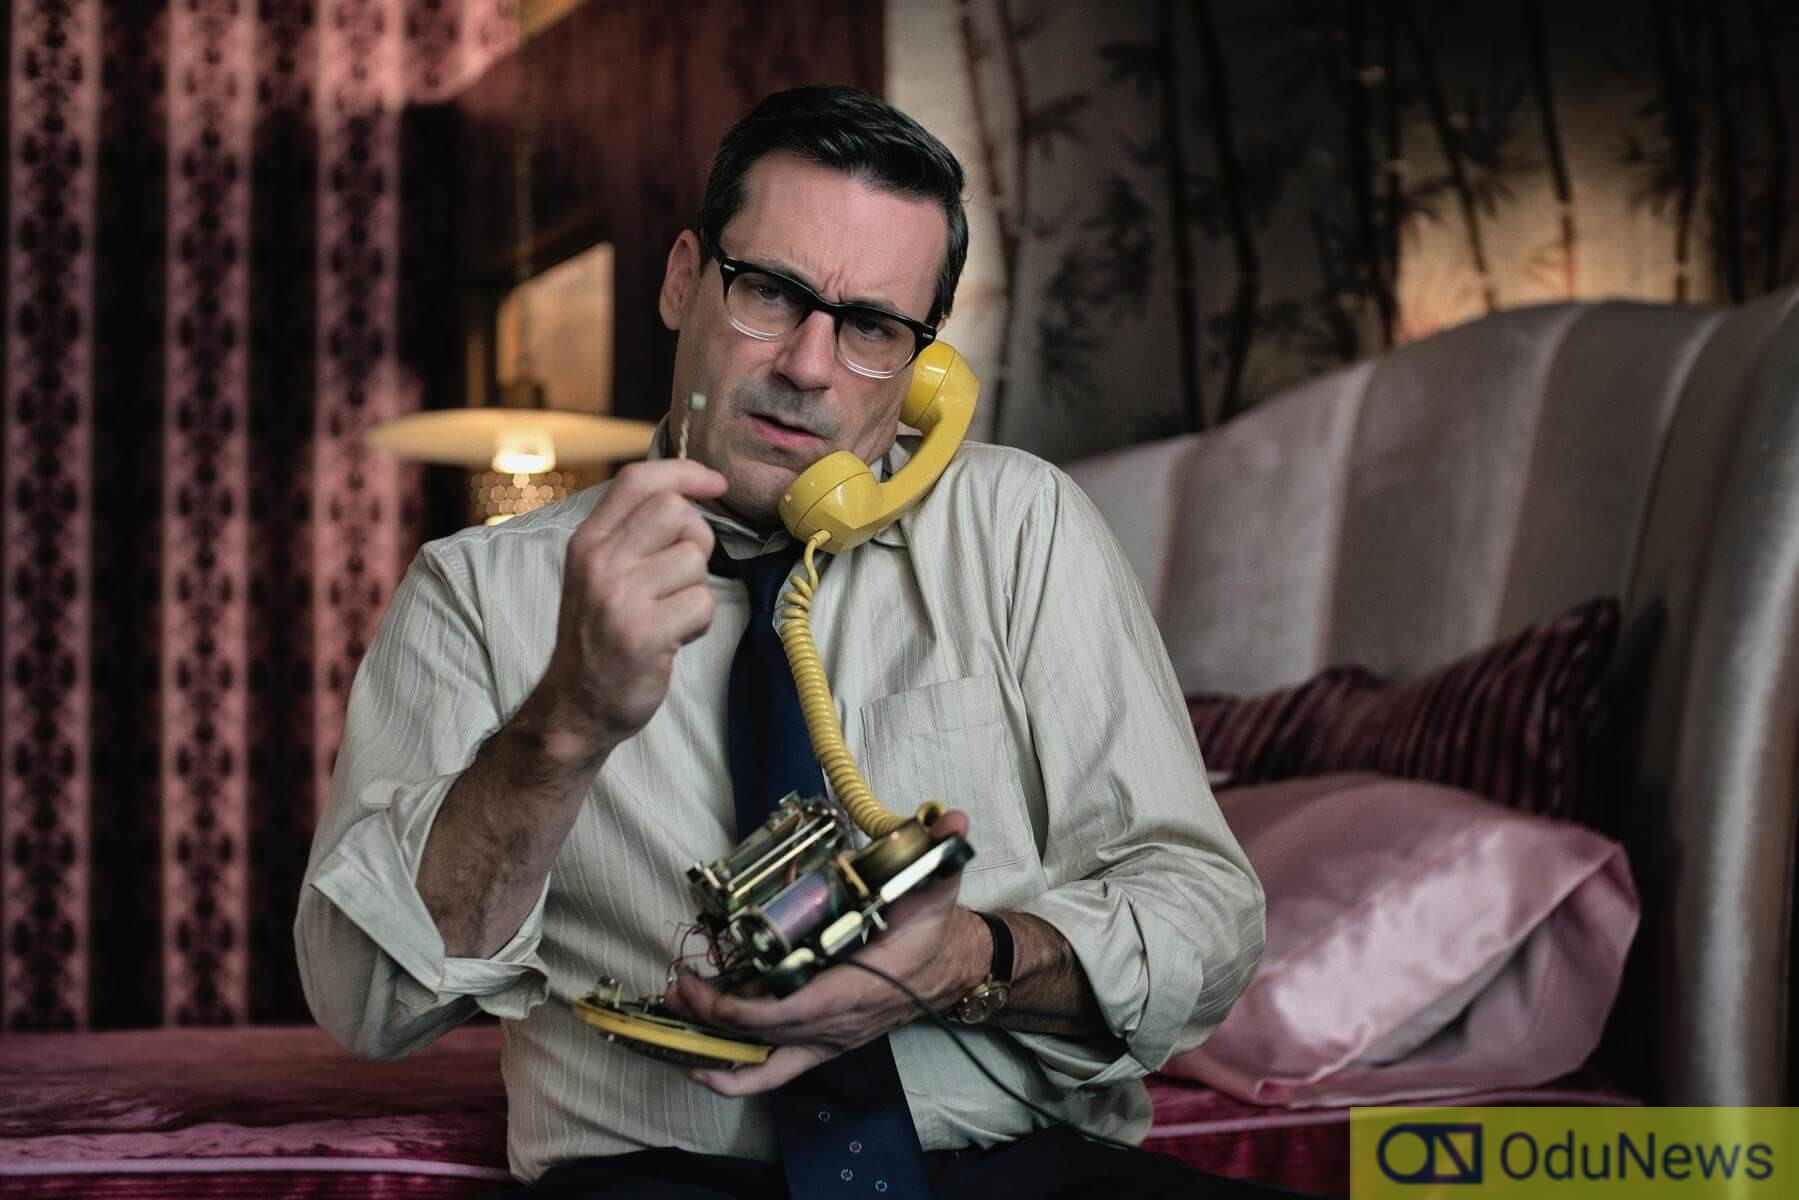 Hamm in BAD TIMES AT THE EL ROYALE film